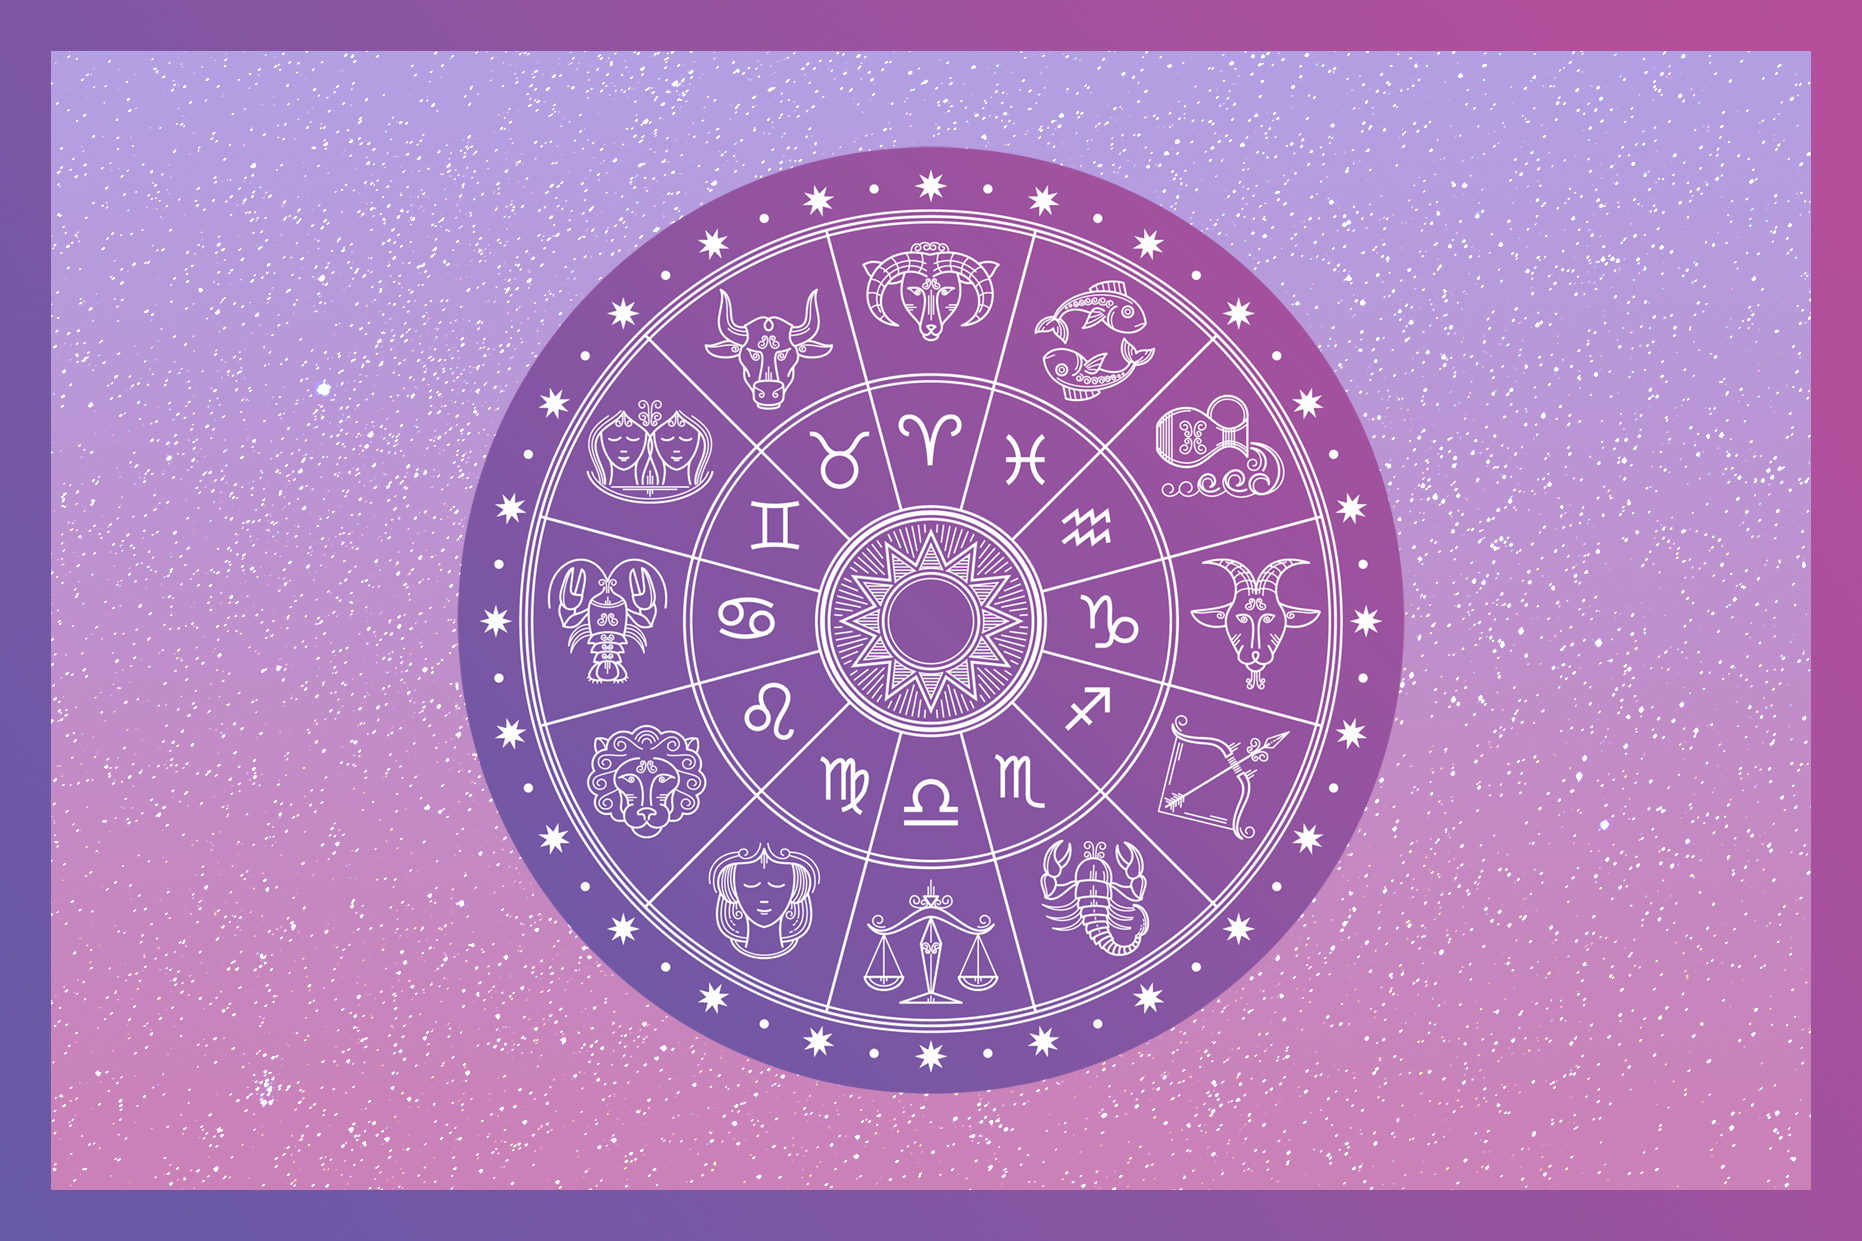 The Complete Guide to Zodiac Signs and Their Meanings